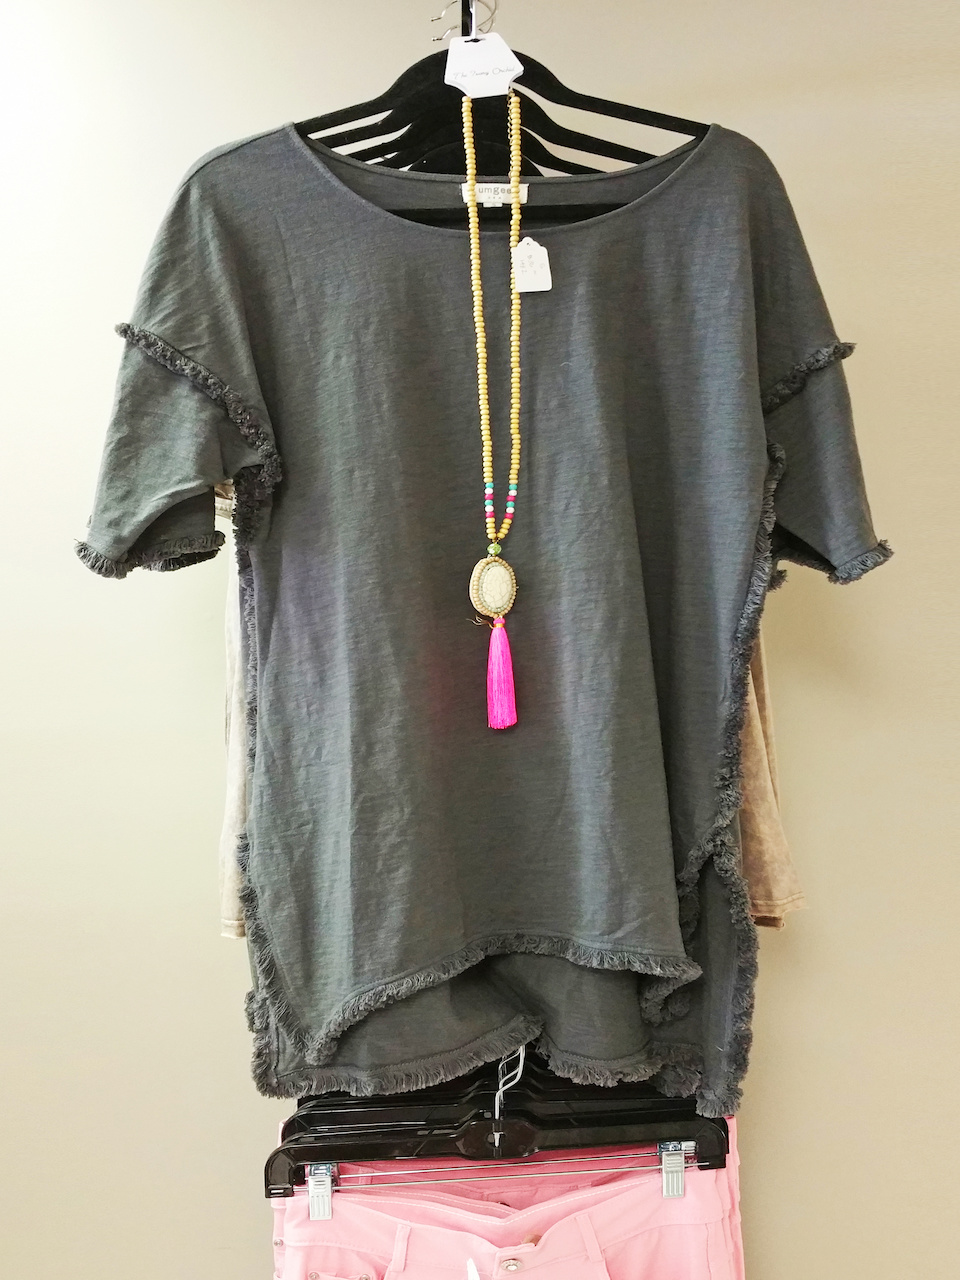 A casual tee is paired with a unique beaded, tassled necklace for a one-of-a-kind boho look!